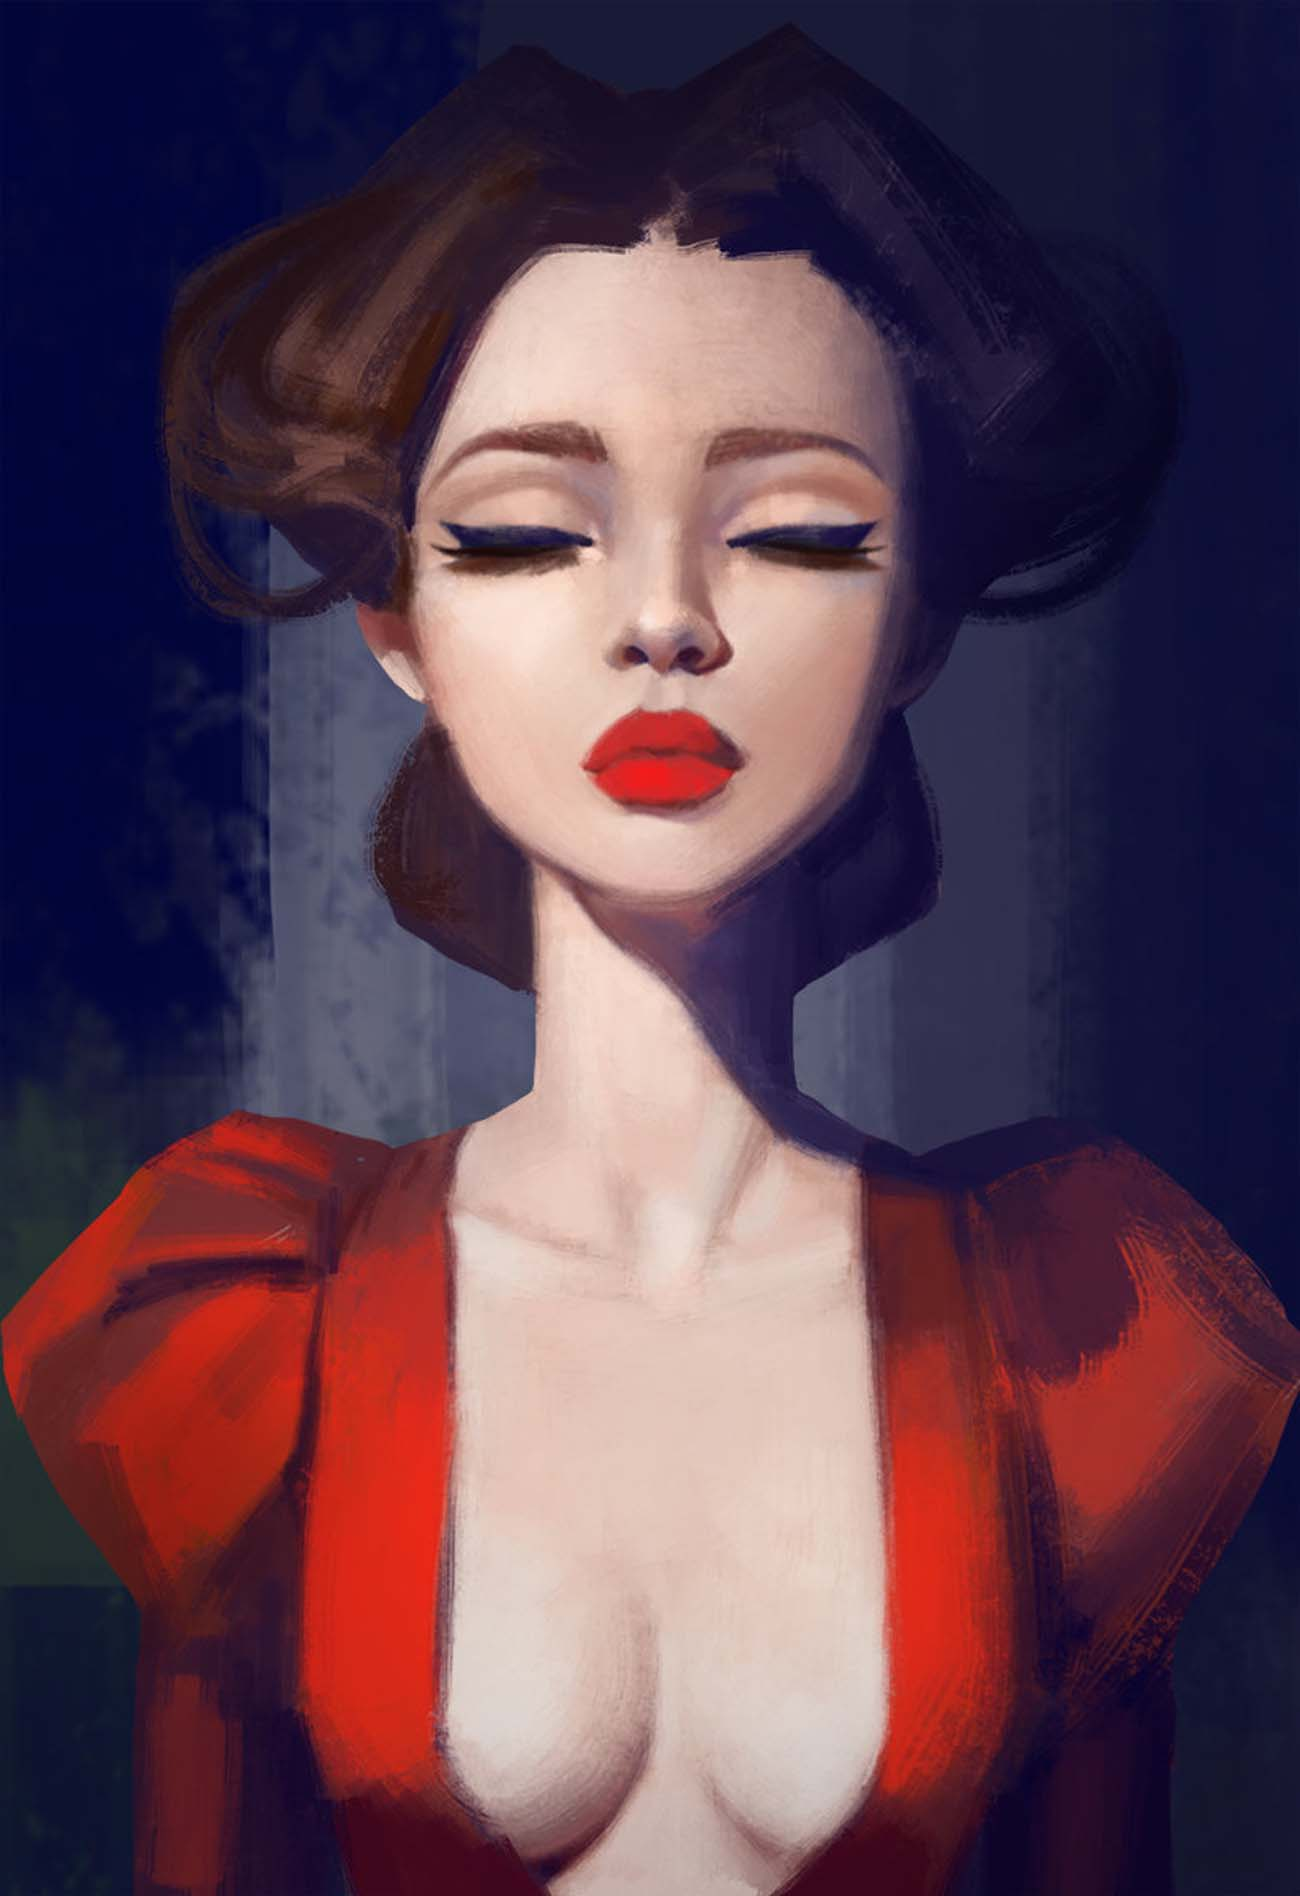 Anna Maystrenko | Paintable.cc Digital Painting Inspiration - Learn the Art of Digital Painting! #digitalpainting #digitalart